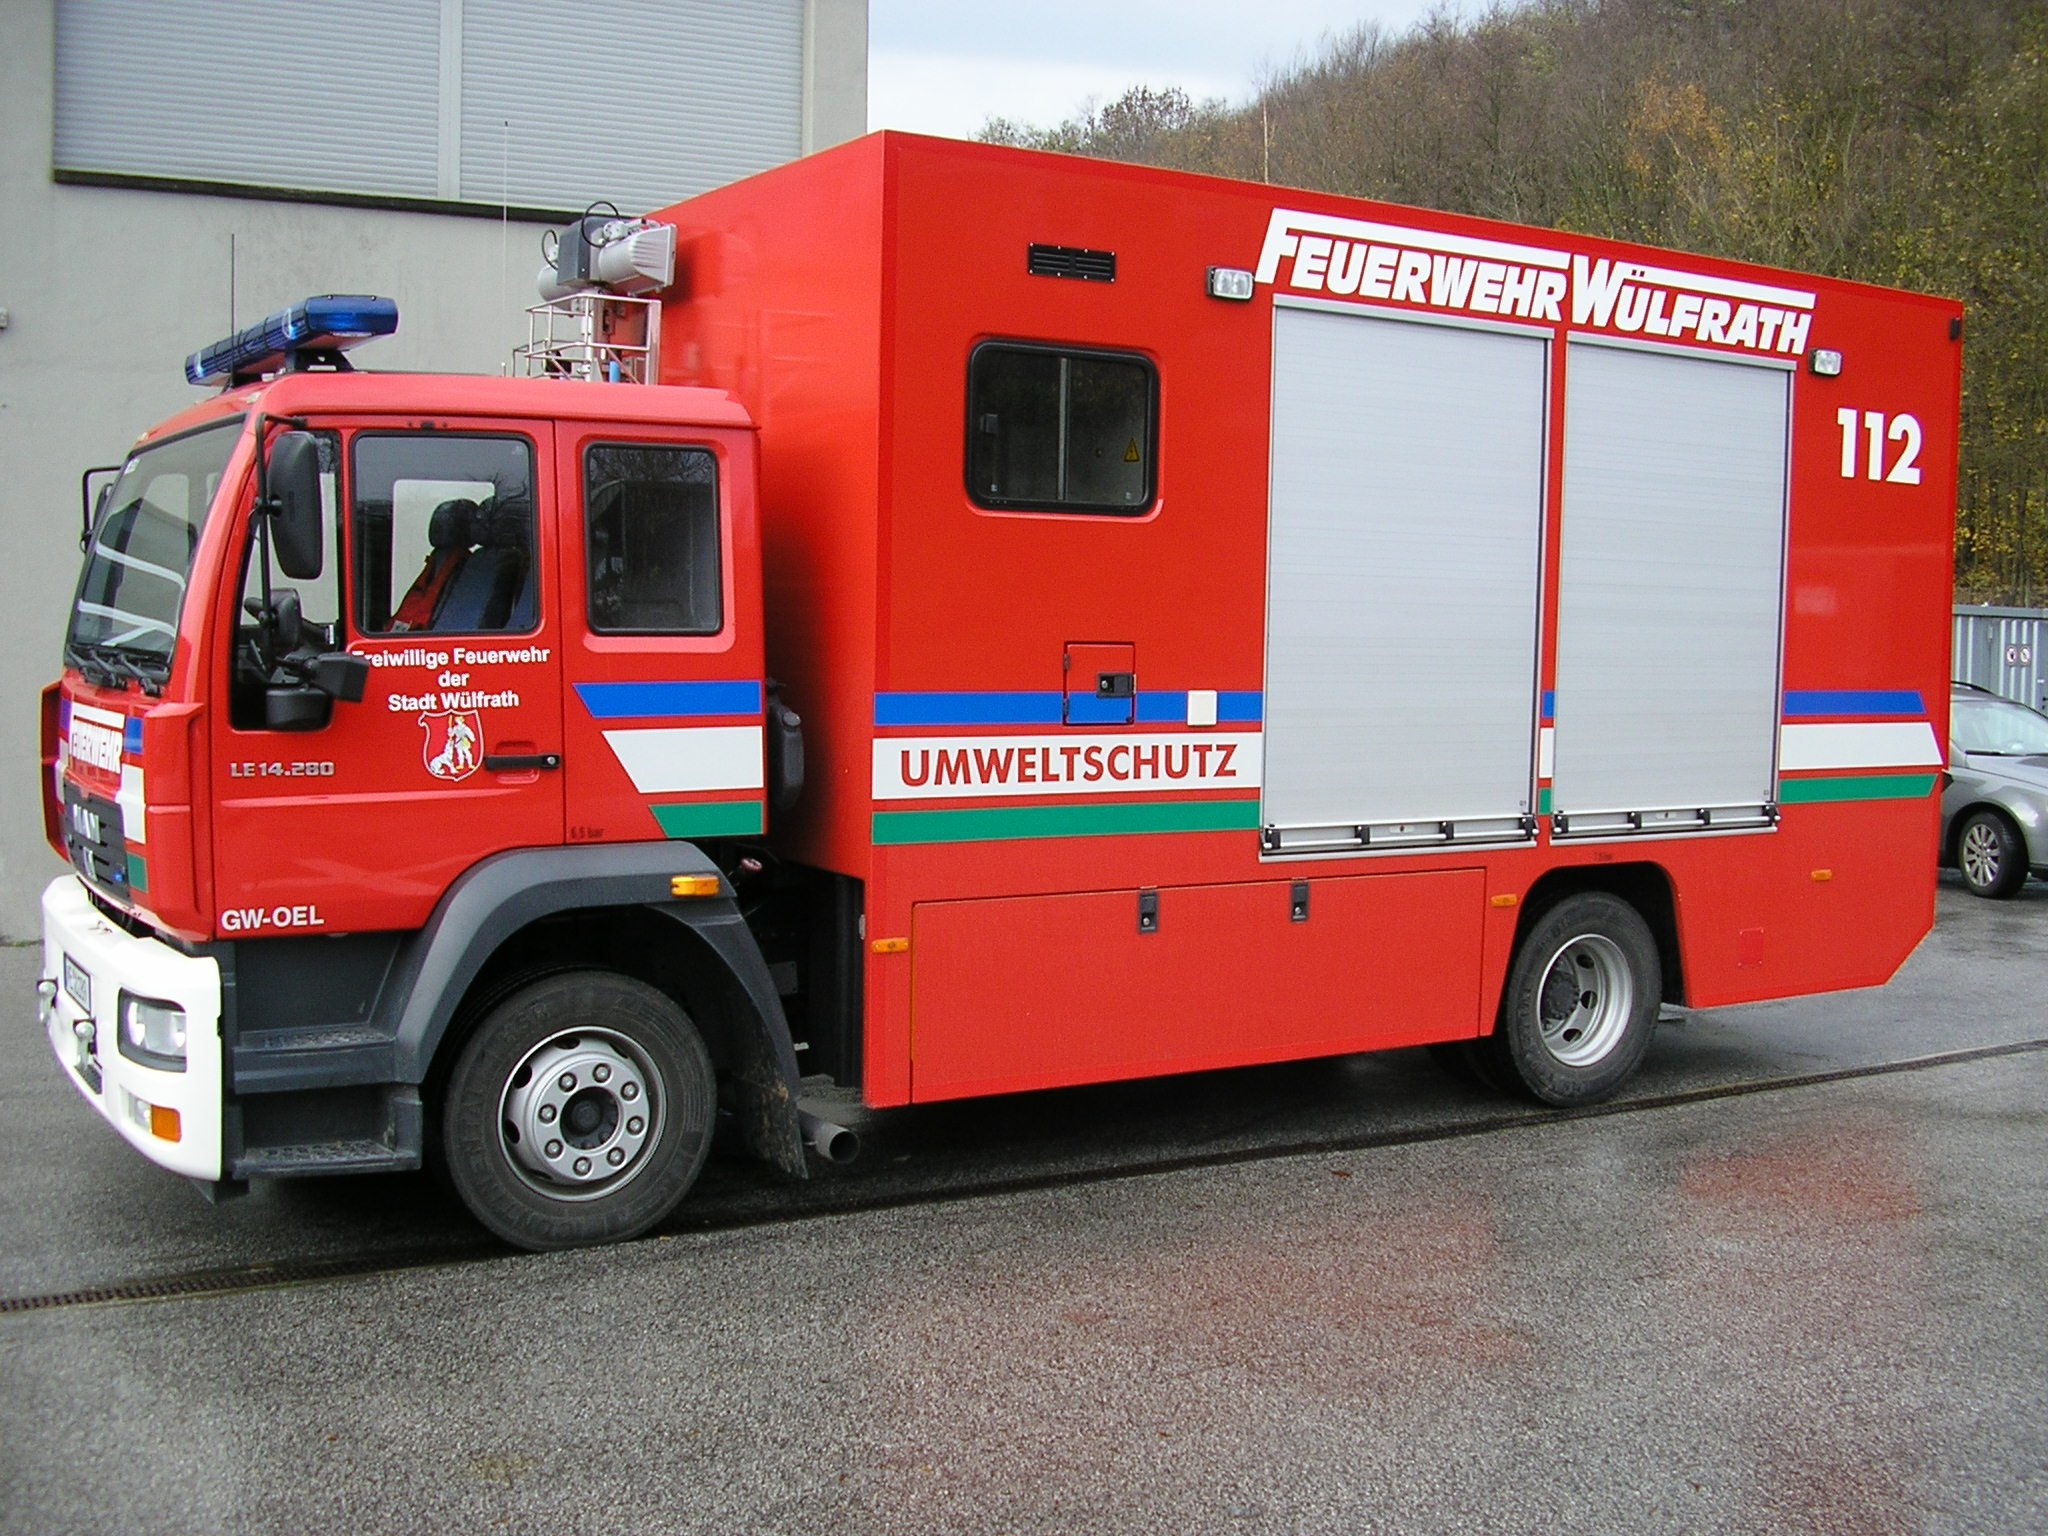 Wulfrath_Fire_Department_environmental_response_vehicle